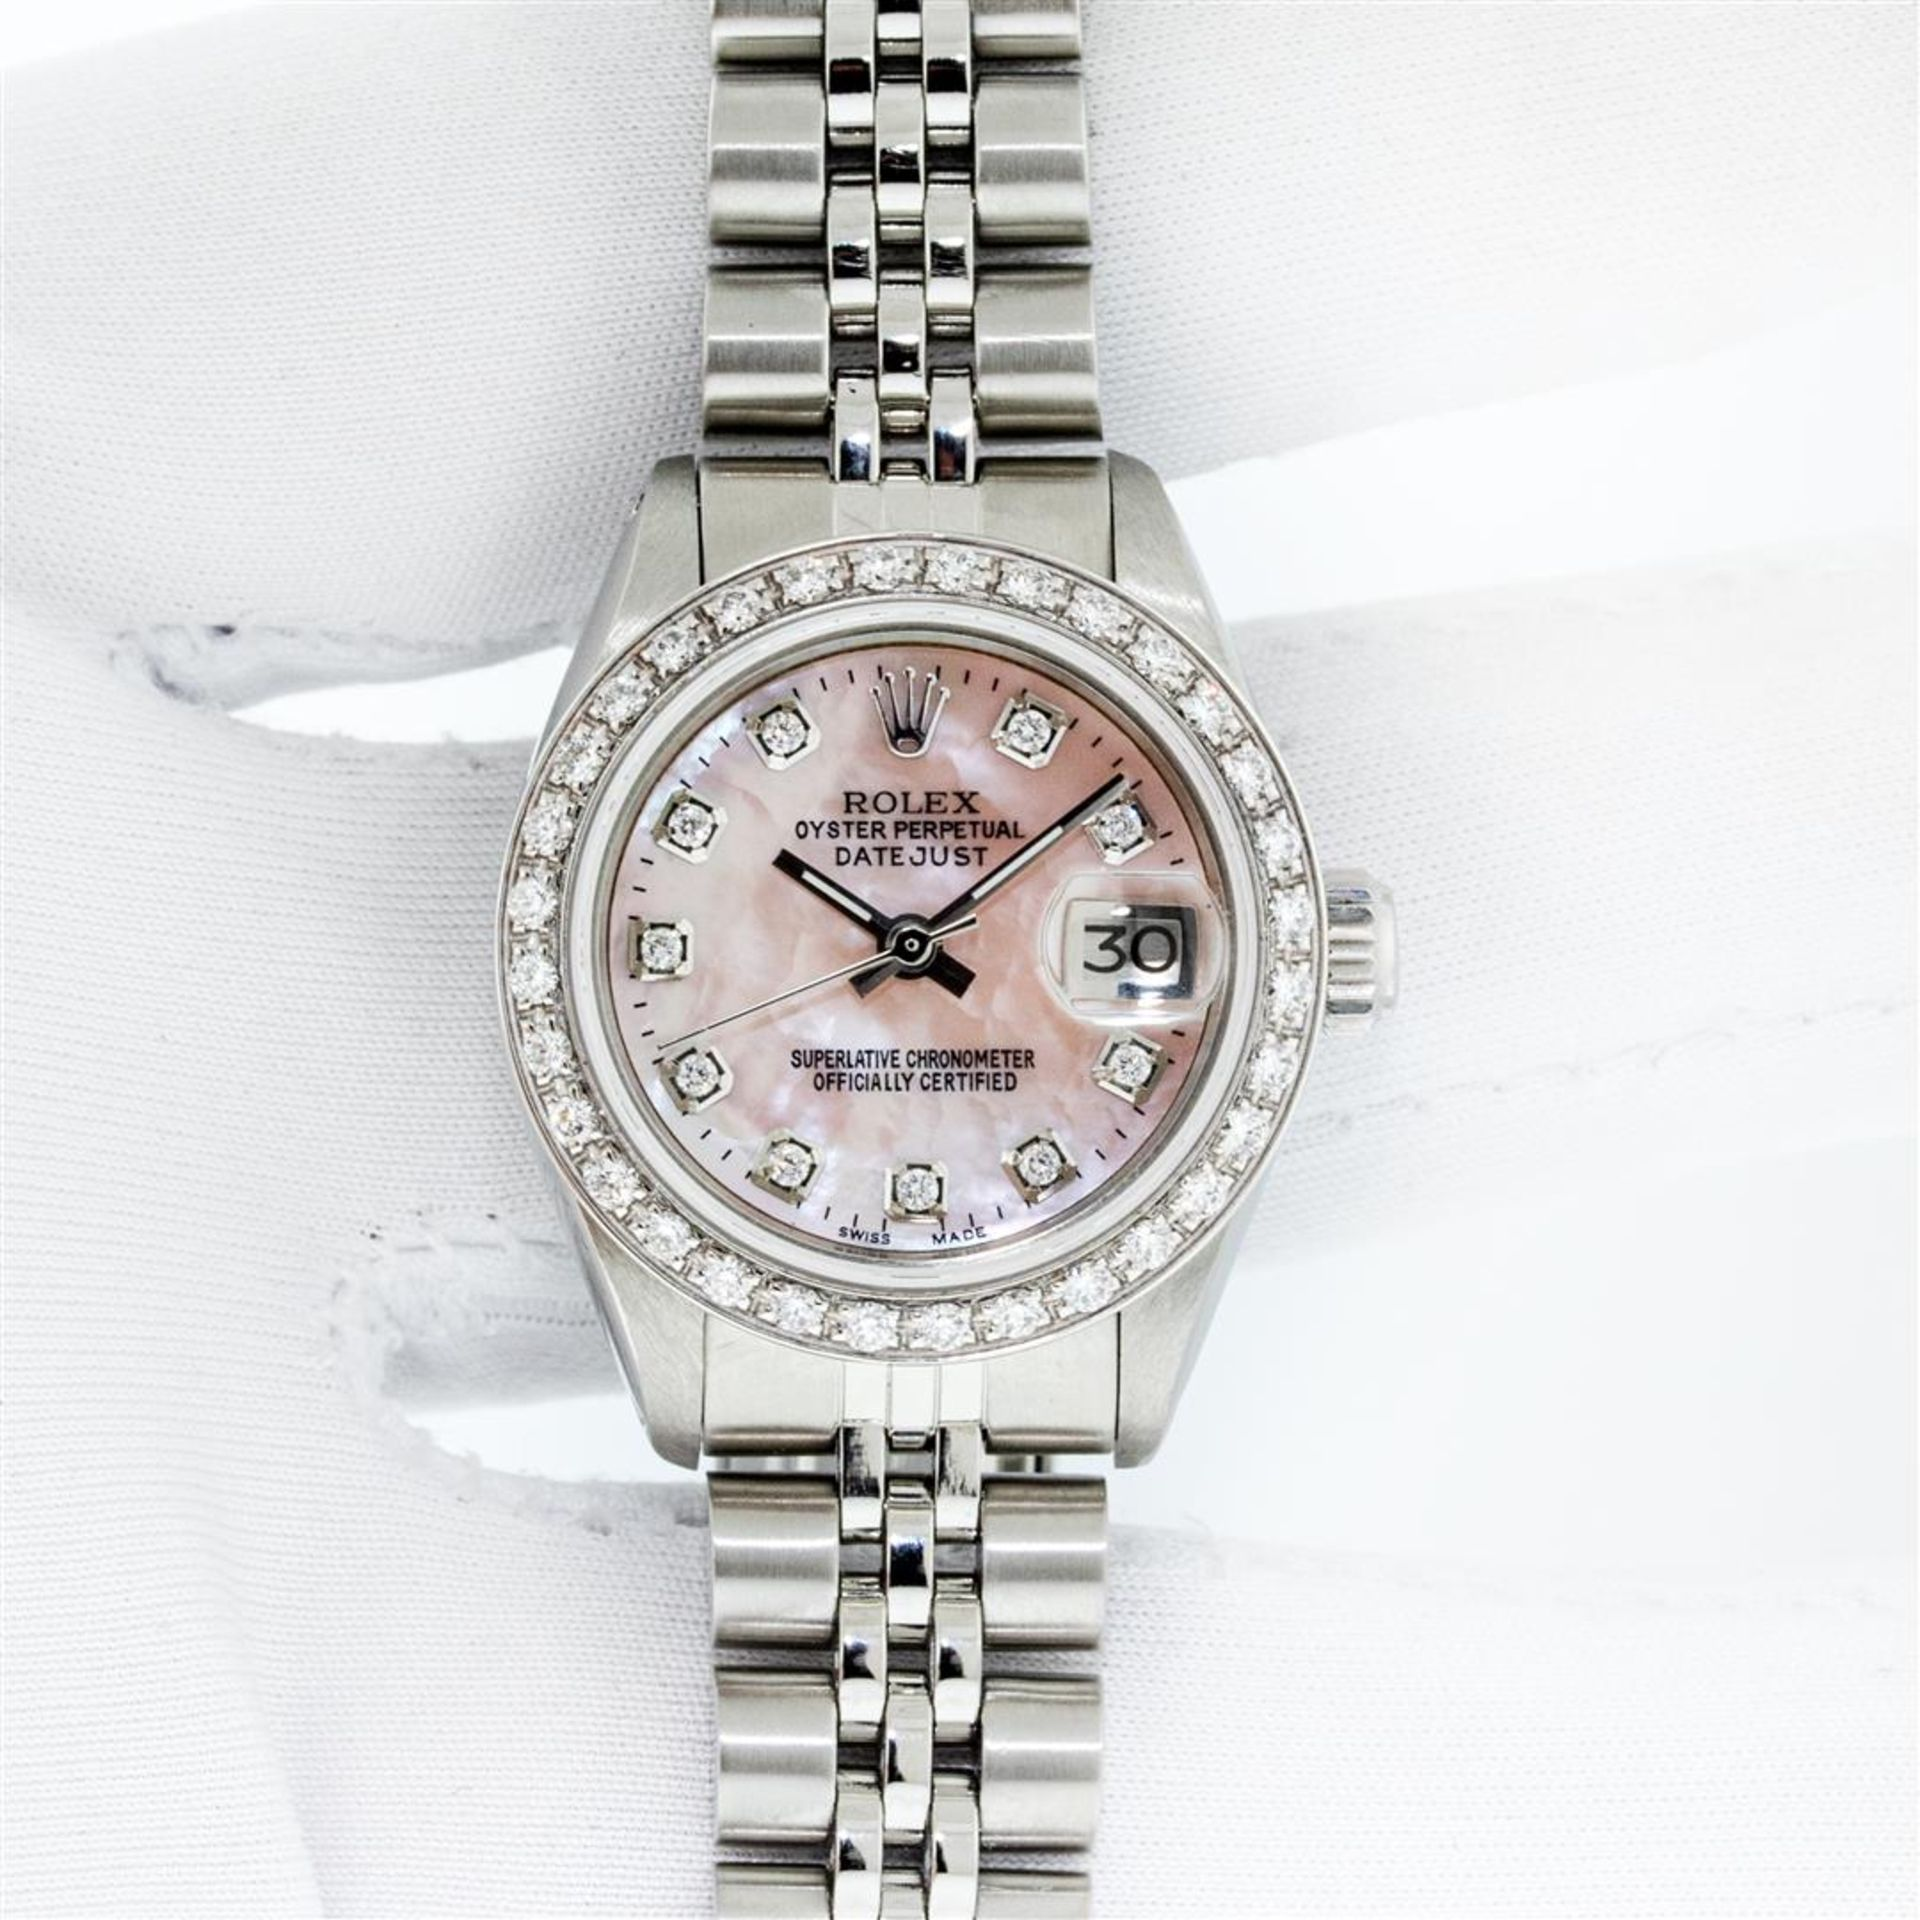 Rolex Ladies Stainless Steel Pink MOP Diamond 26MM Oyster Perpetaul Datejust Wit - Image 3 of 9